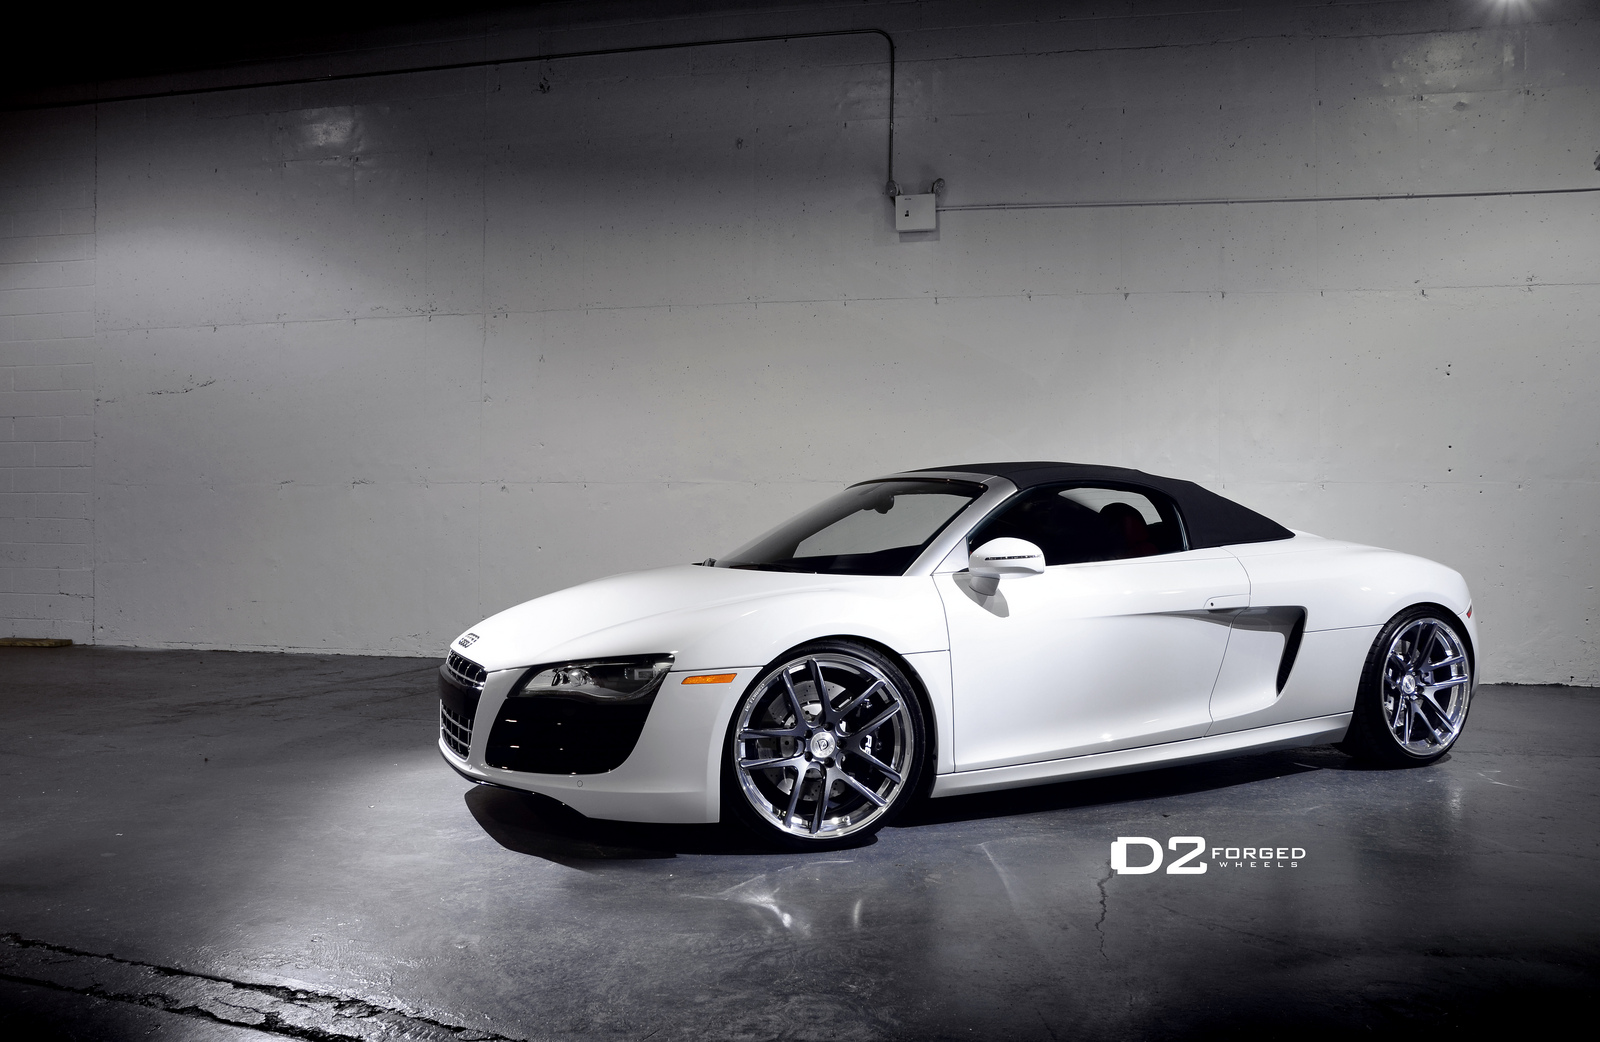 Audi R8 V10 D2forged Mb8 Wheels 04 Audi Tuning Mag